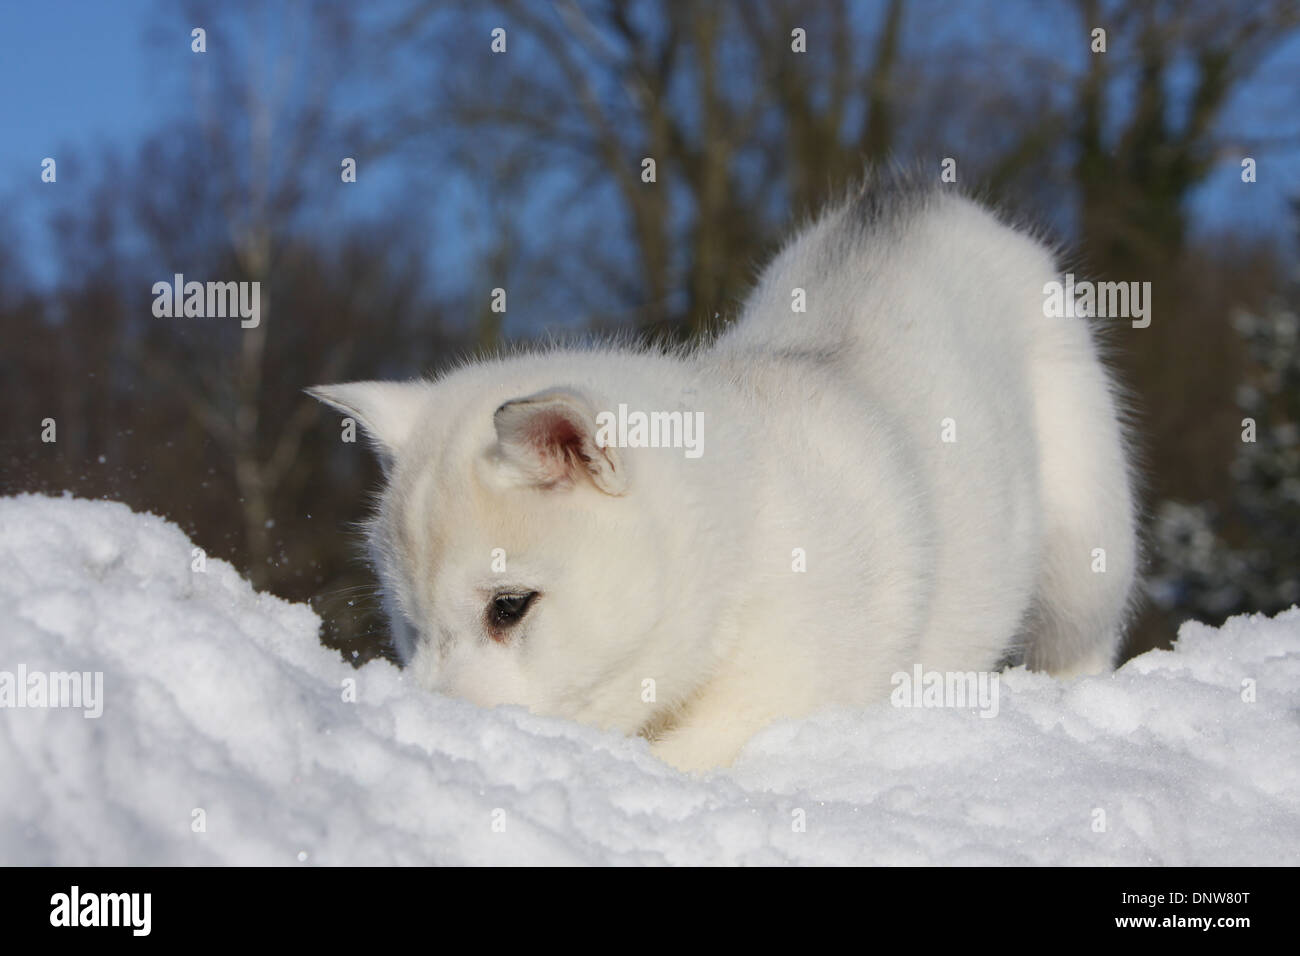 Dog Siberian Husky Puppy Playing In The Snow Stock Photo 65093976